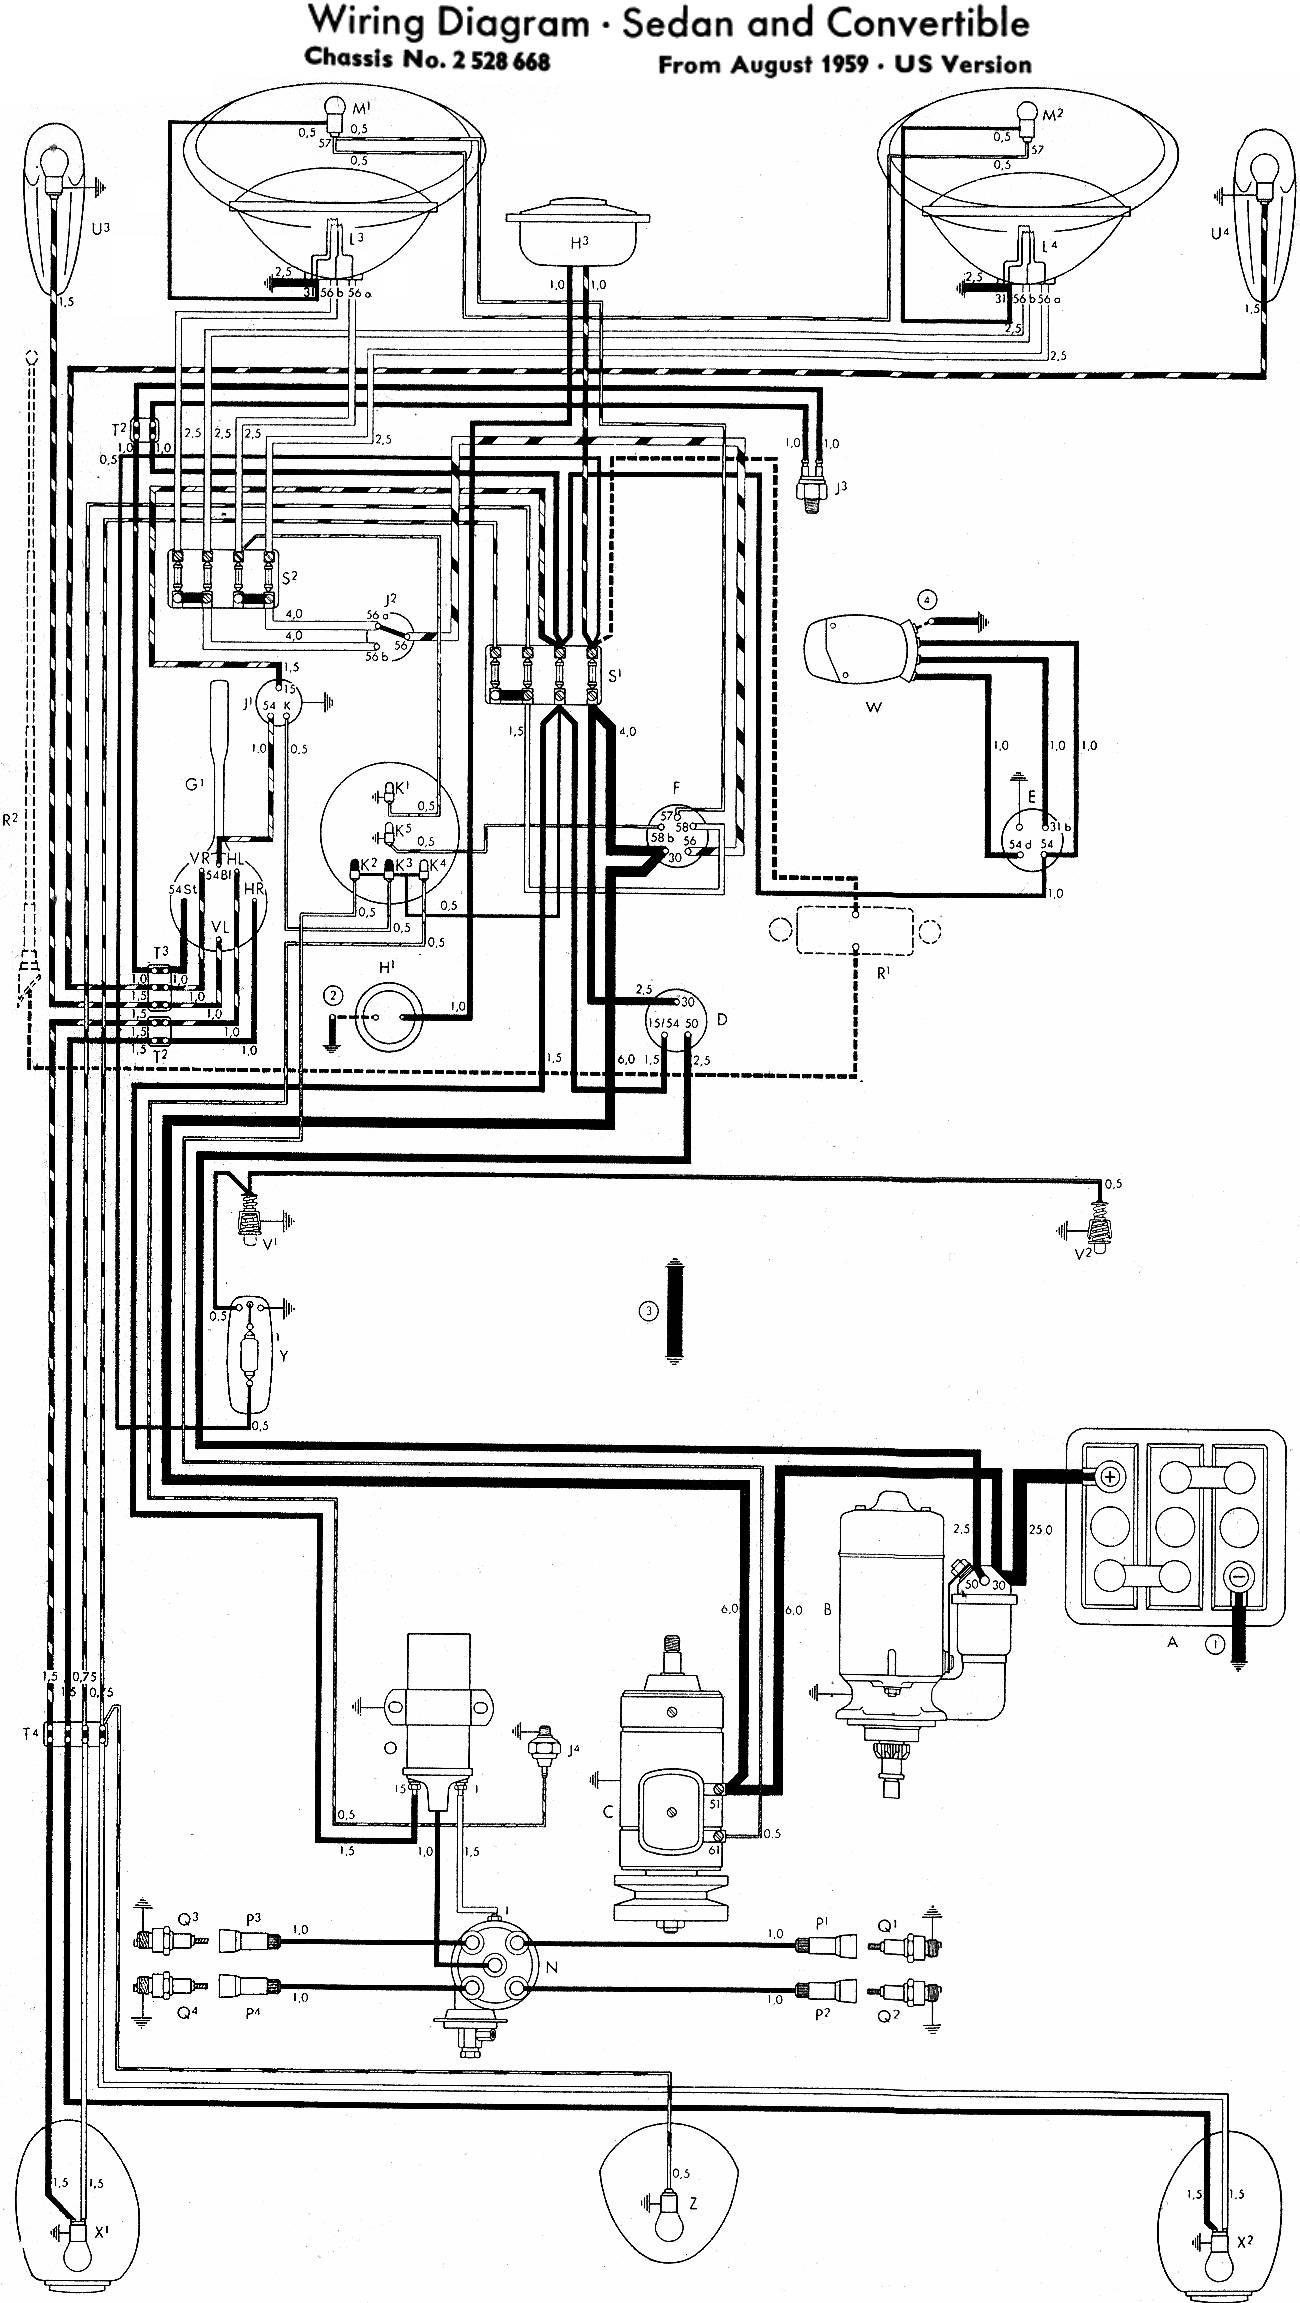 1958 vw beetle wiring diagram